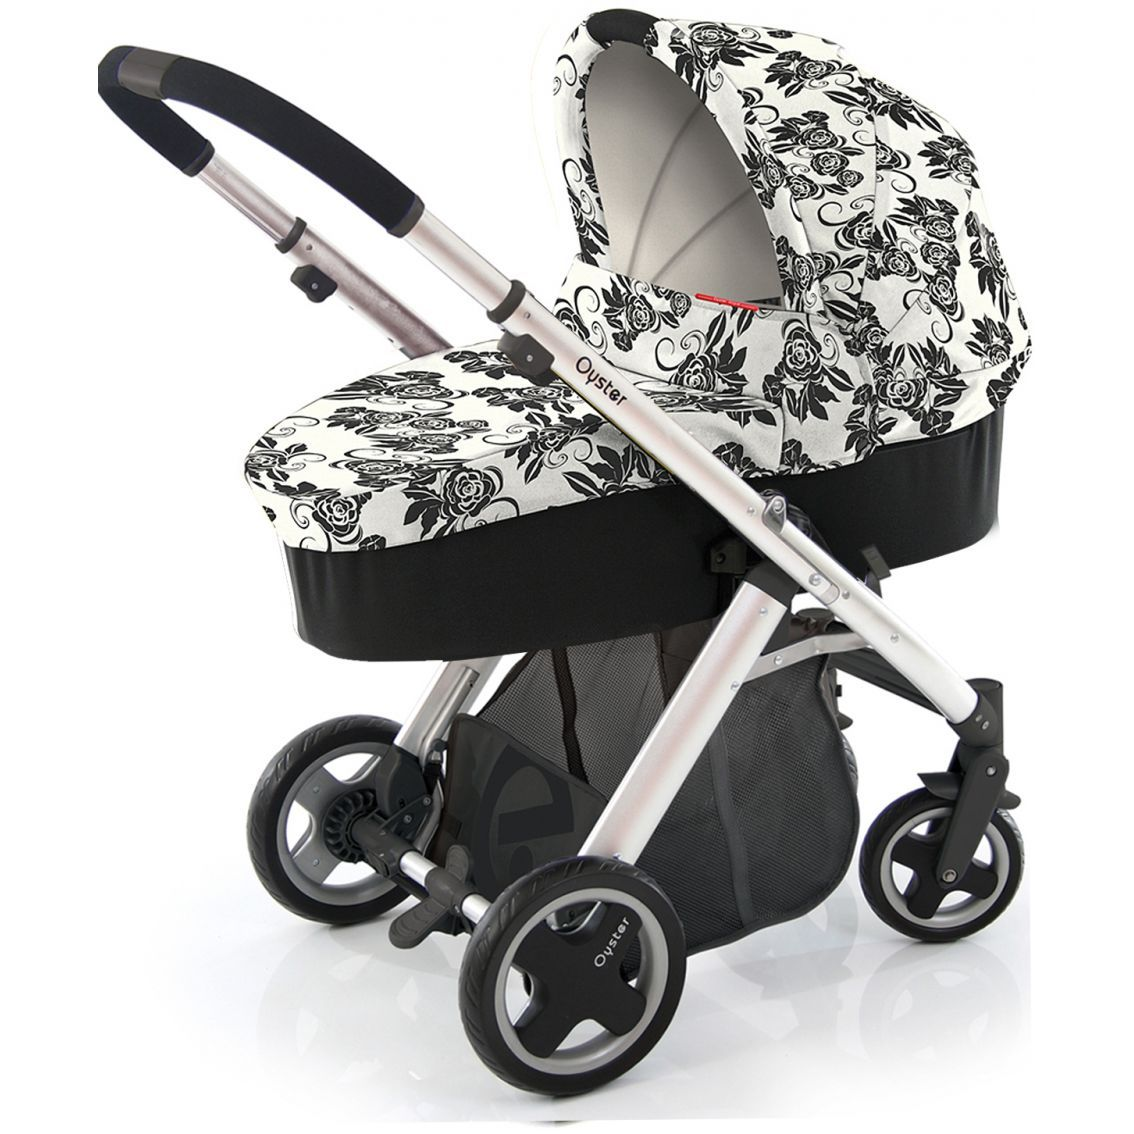 Oyster Double Pram Mothercare Babystyle Babystyle Oyster Vogue 3 In 1 Pram Black Rose